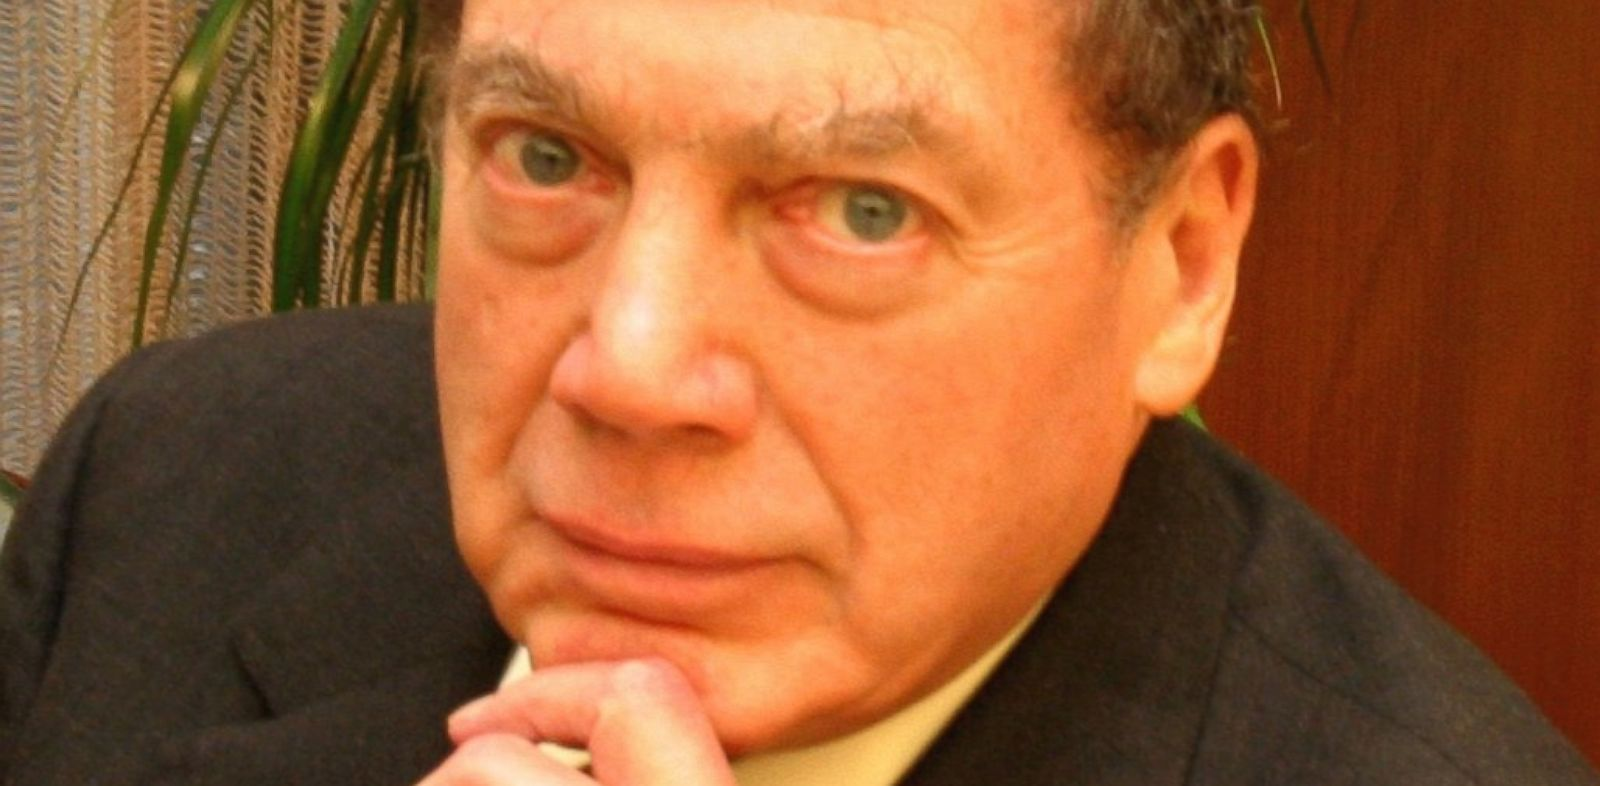 PHOTO: Edgar Bronfman, a prominent Jewish philanthropist and recipient of the Presidential Medal of Freedom, has died at age 84.